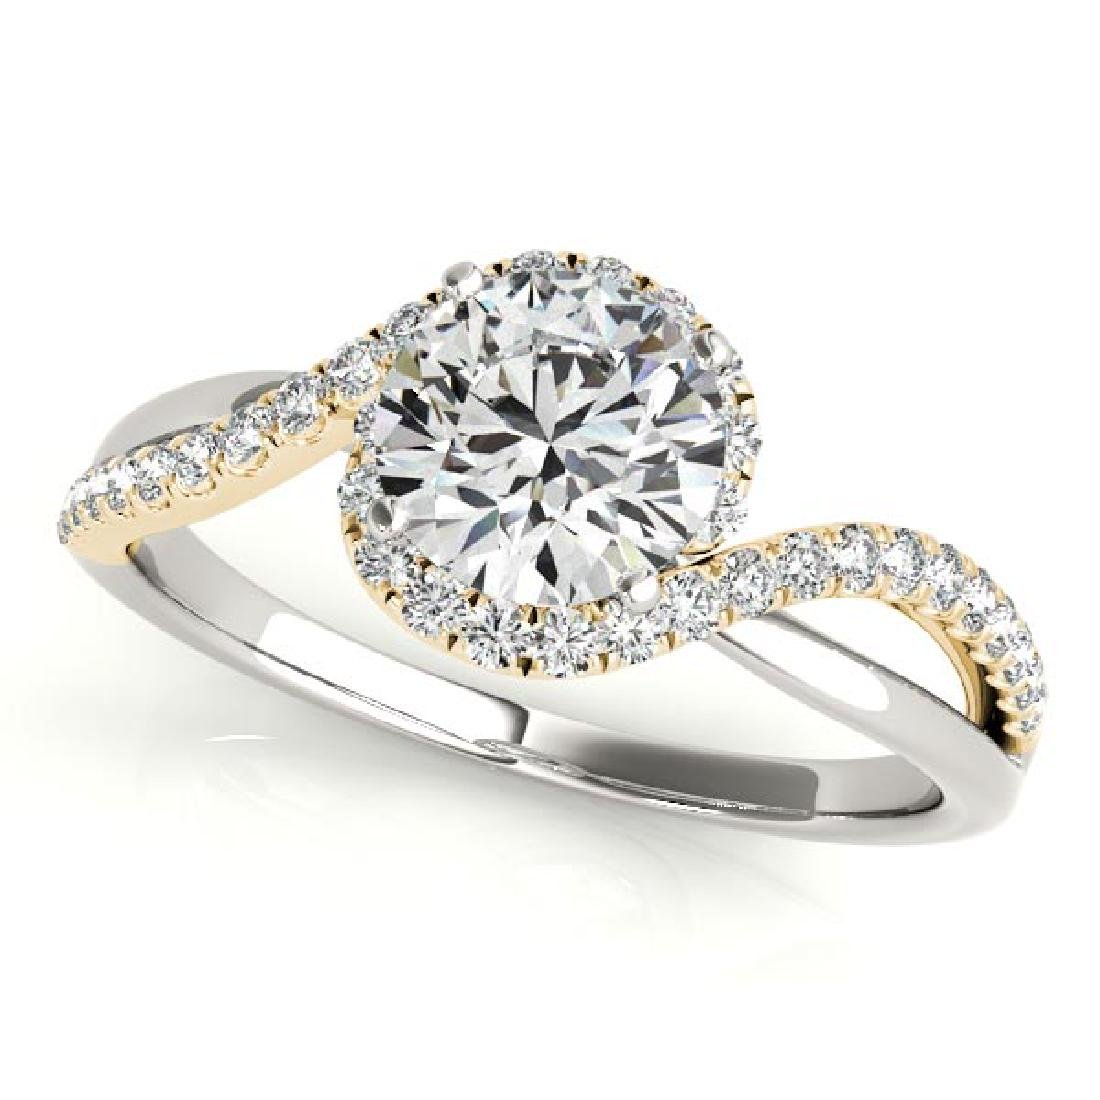 CERTIFIED TWO TONE GOLD 1.43 CT G-H/VS-SI1 DIAMOND HALO